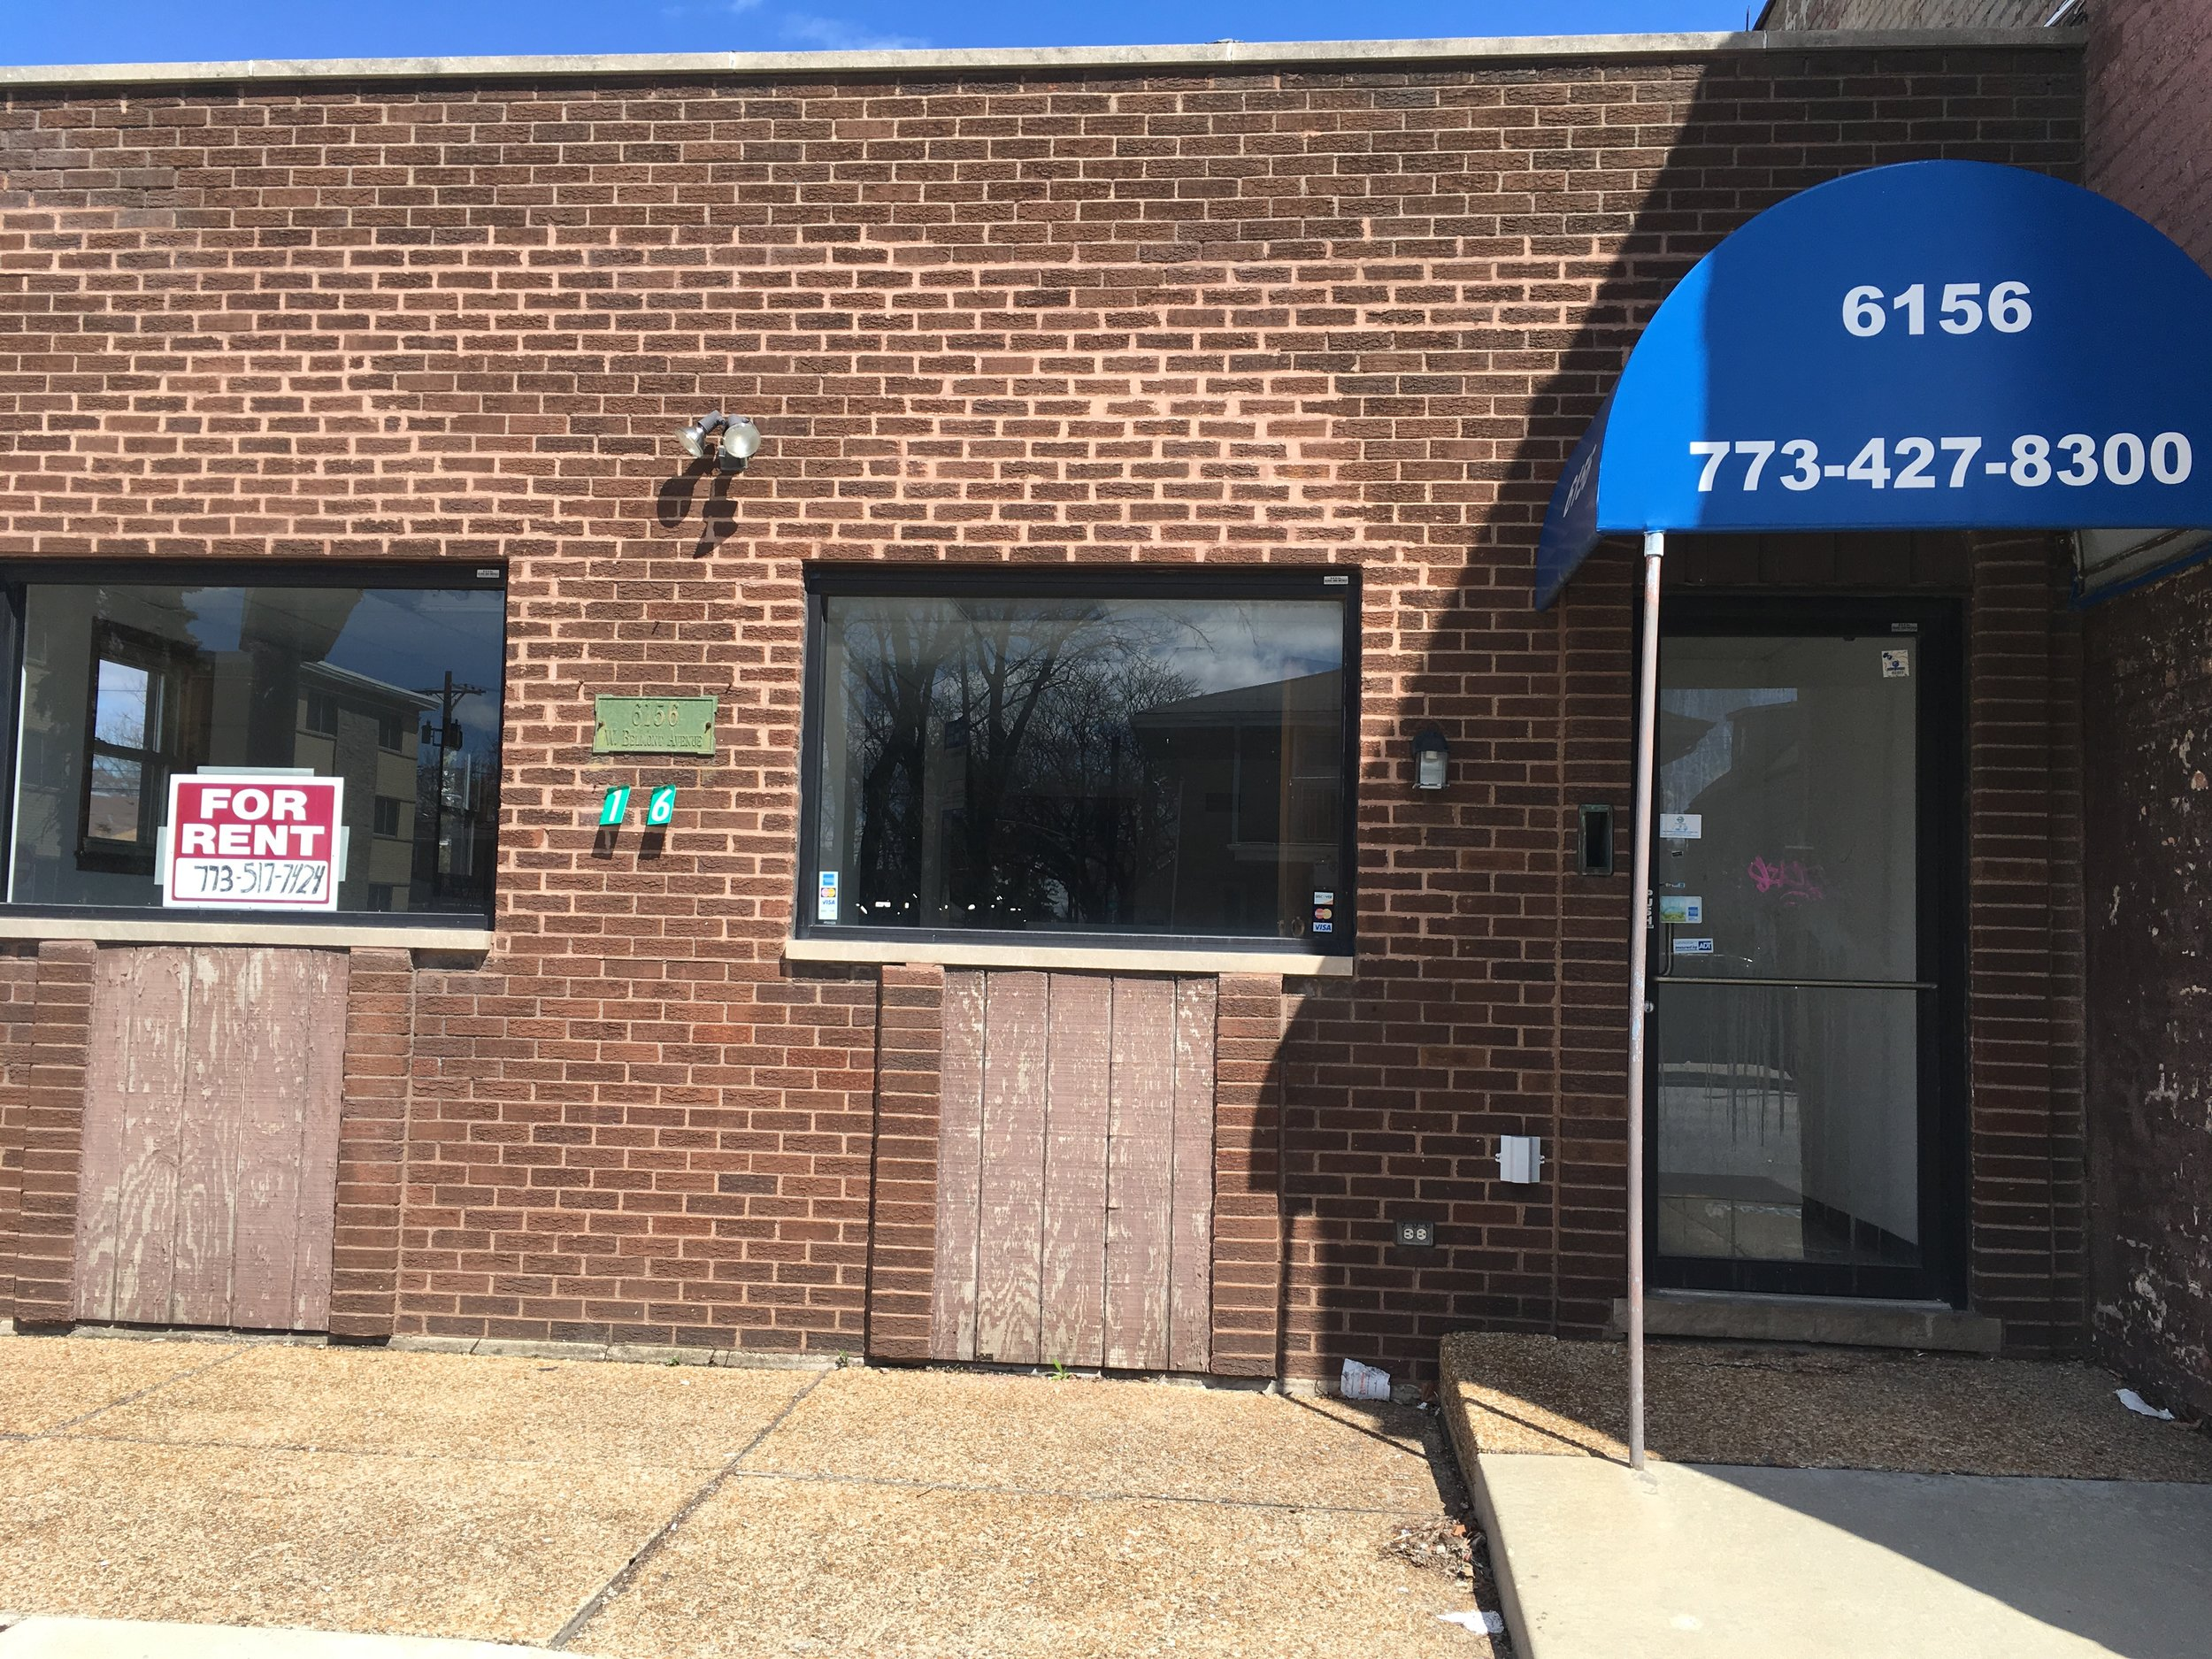 6156 W. Belmont Ave |  Call  773-517-7424